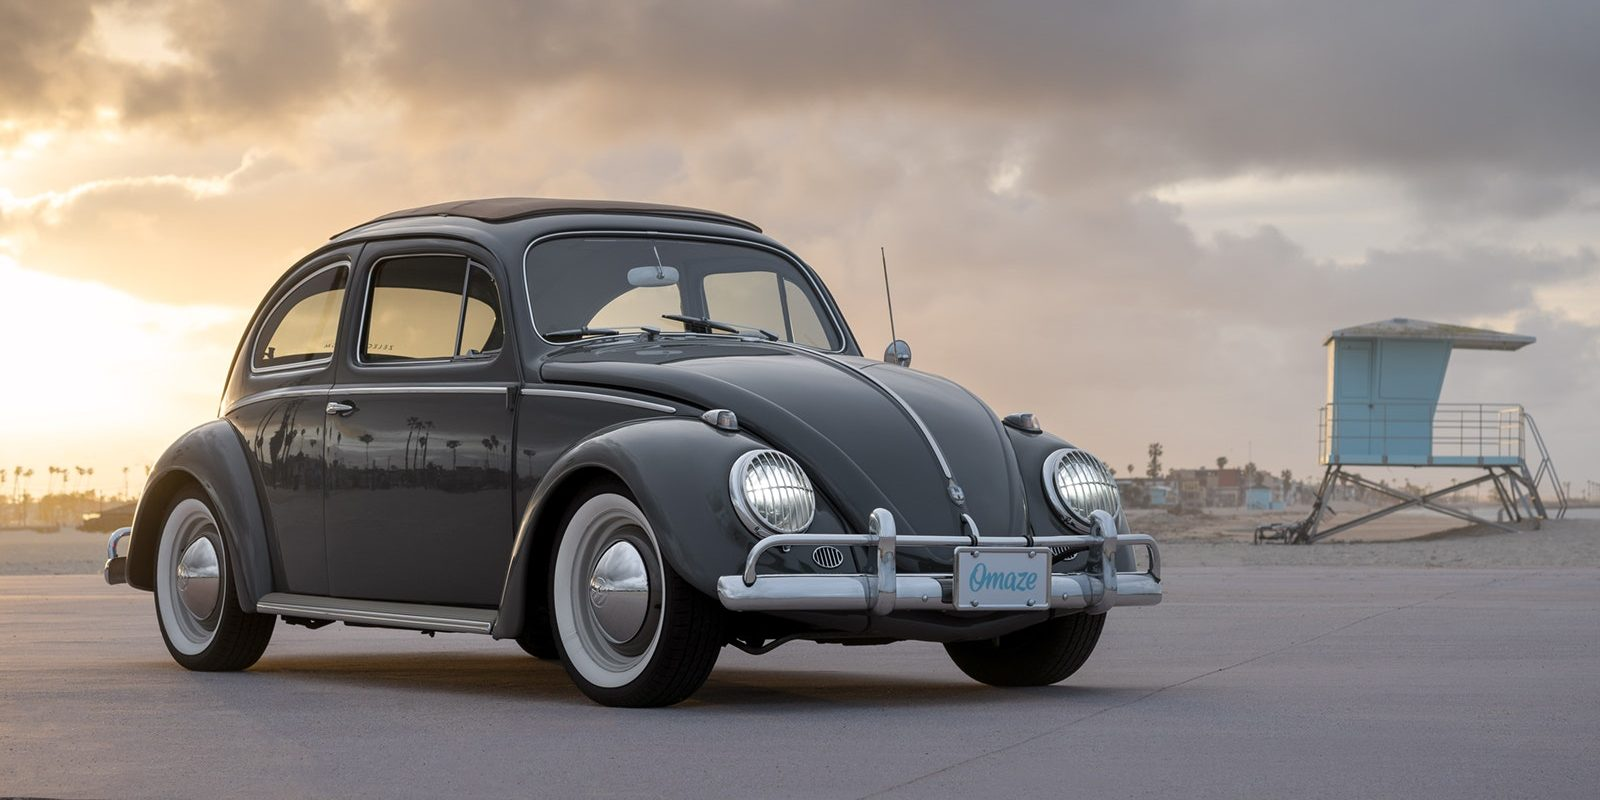 You Can Win This Tesla Powered Old School Vw Bug Electrek